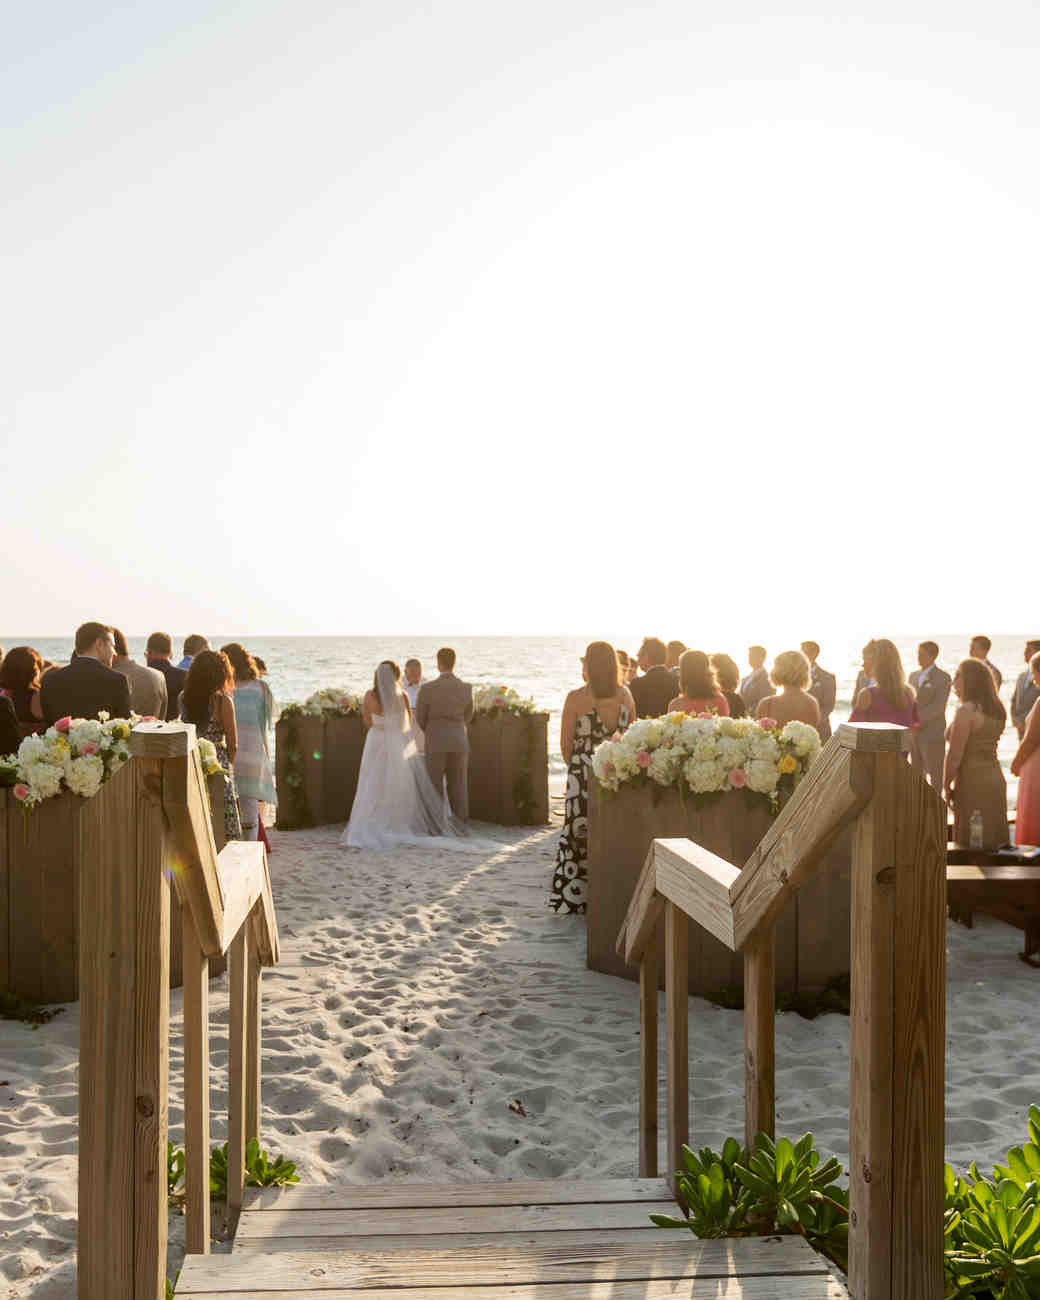 Beach Wedding Ceremony Processional: A Lemon-Inspired Beach Wedding In Naples, Florida